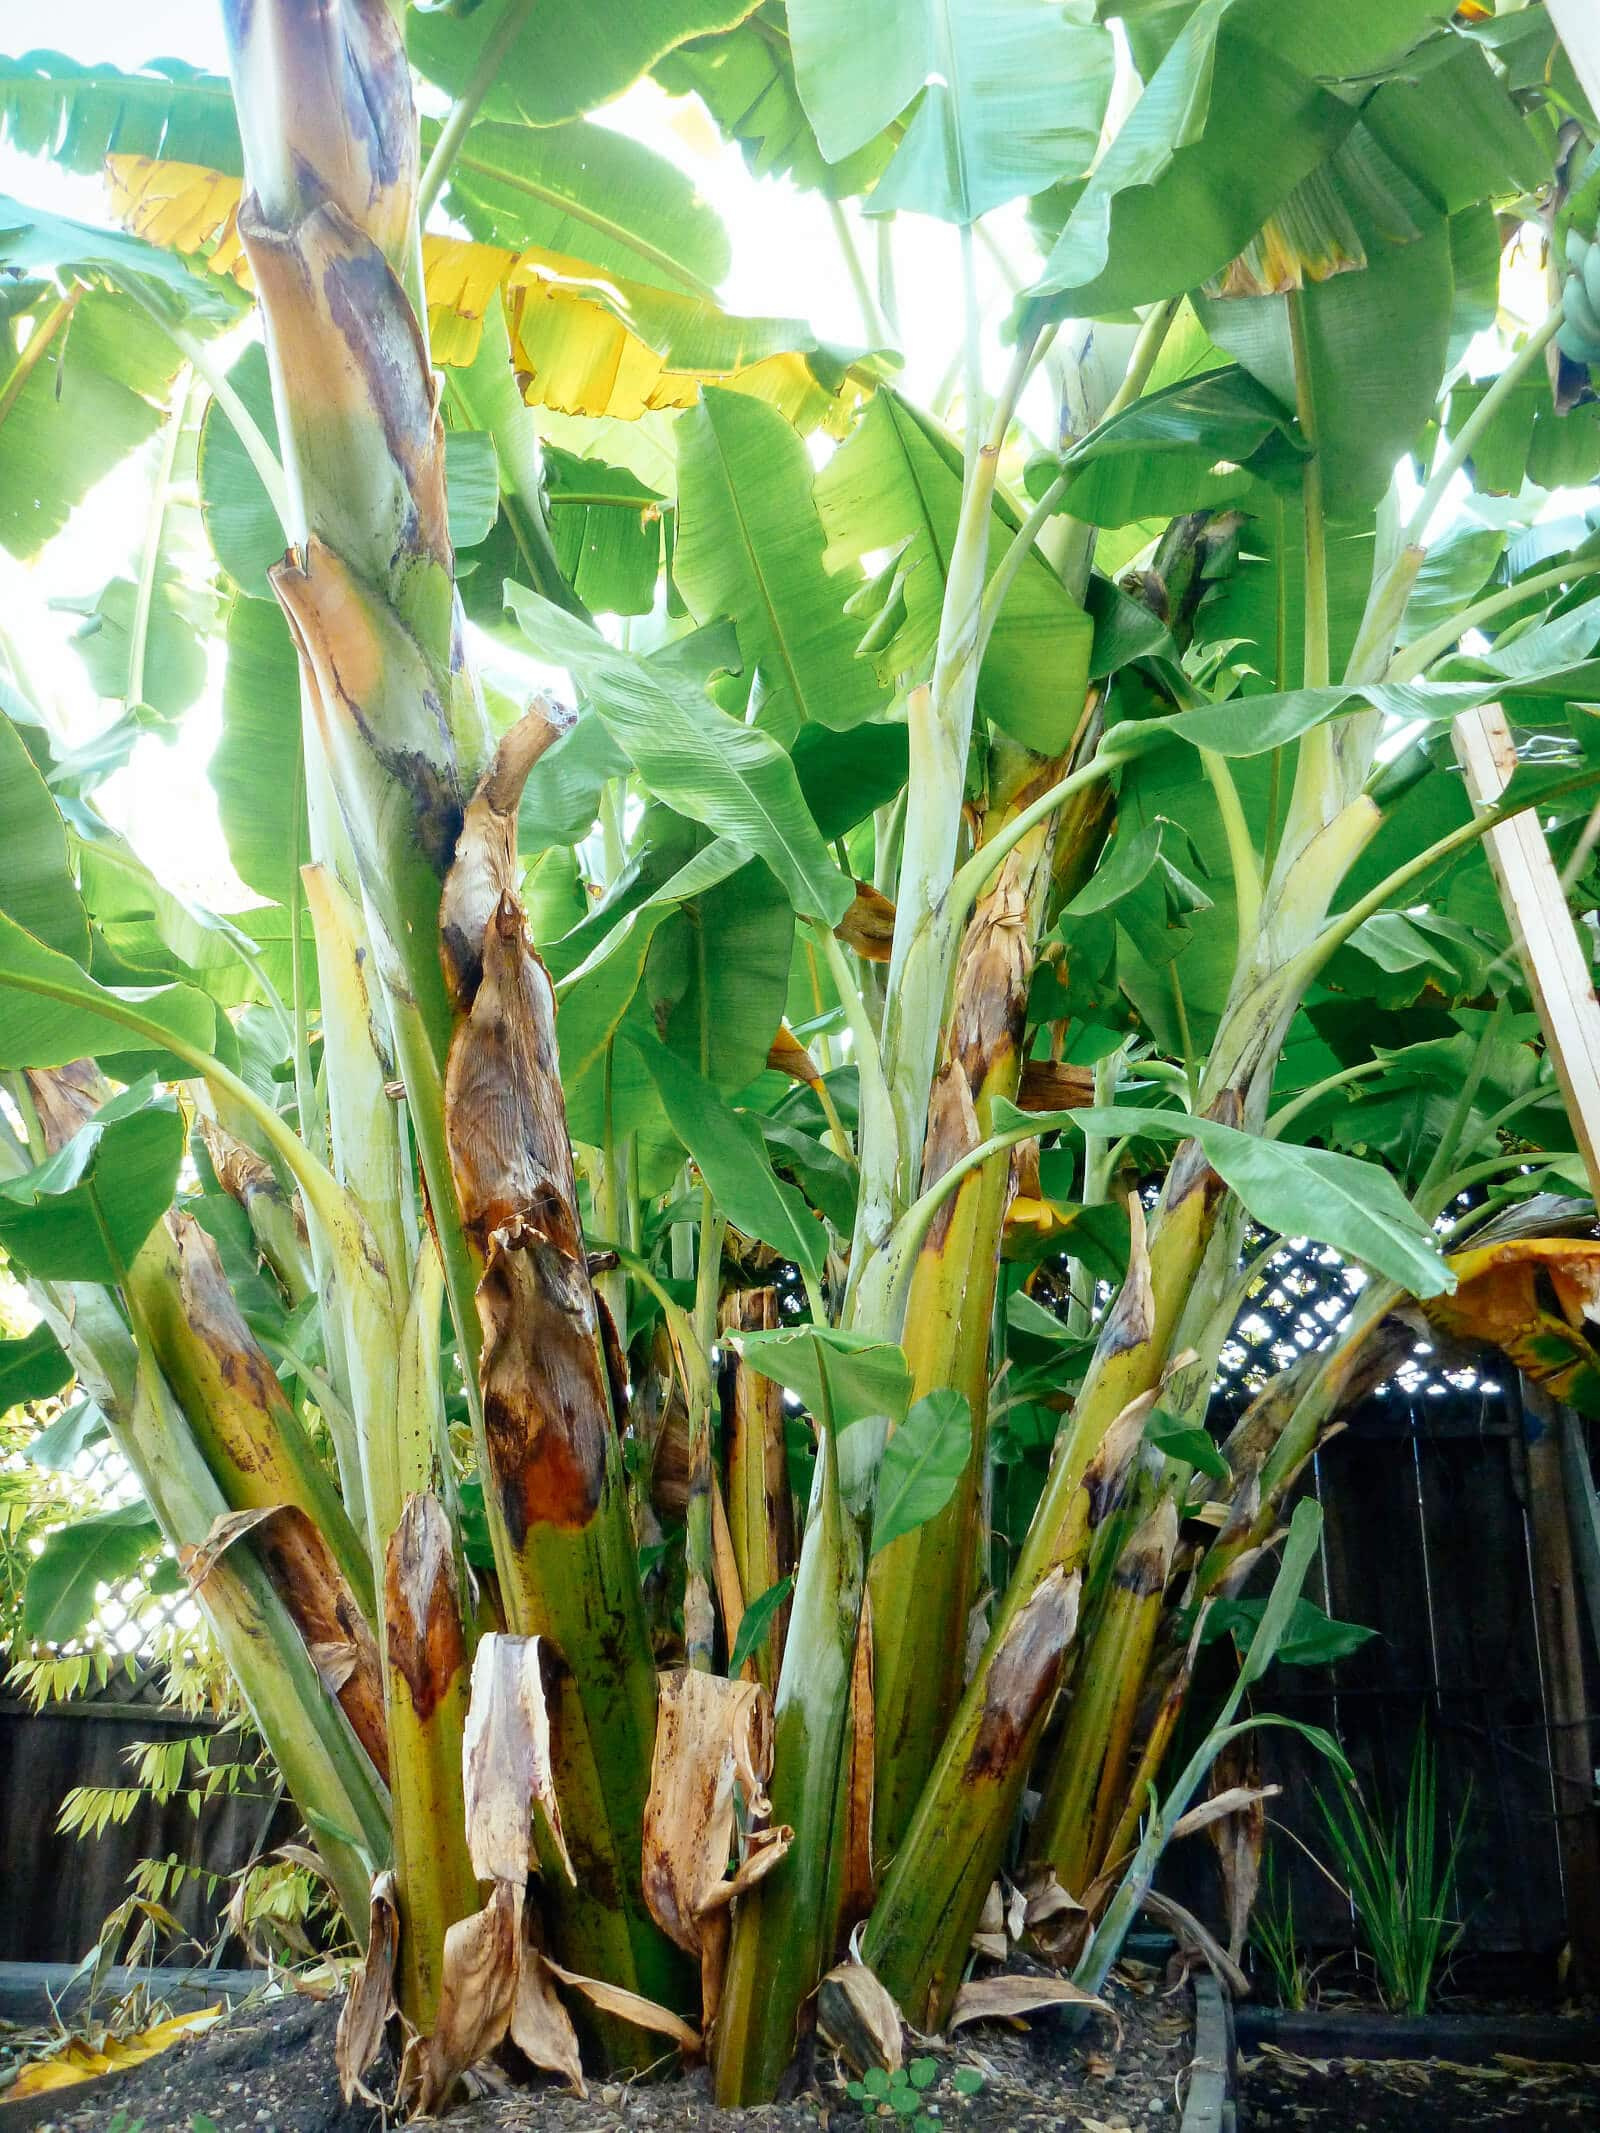 Banana plants (shoots) can grow in clusters and look like a large tree